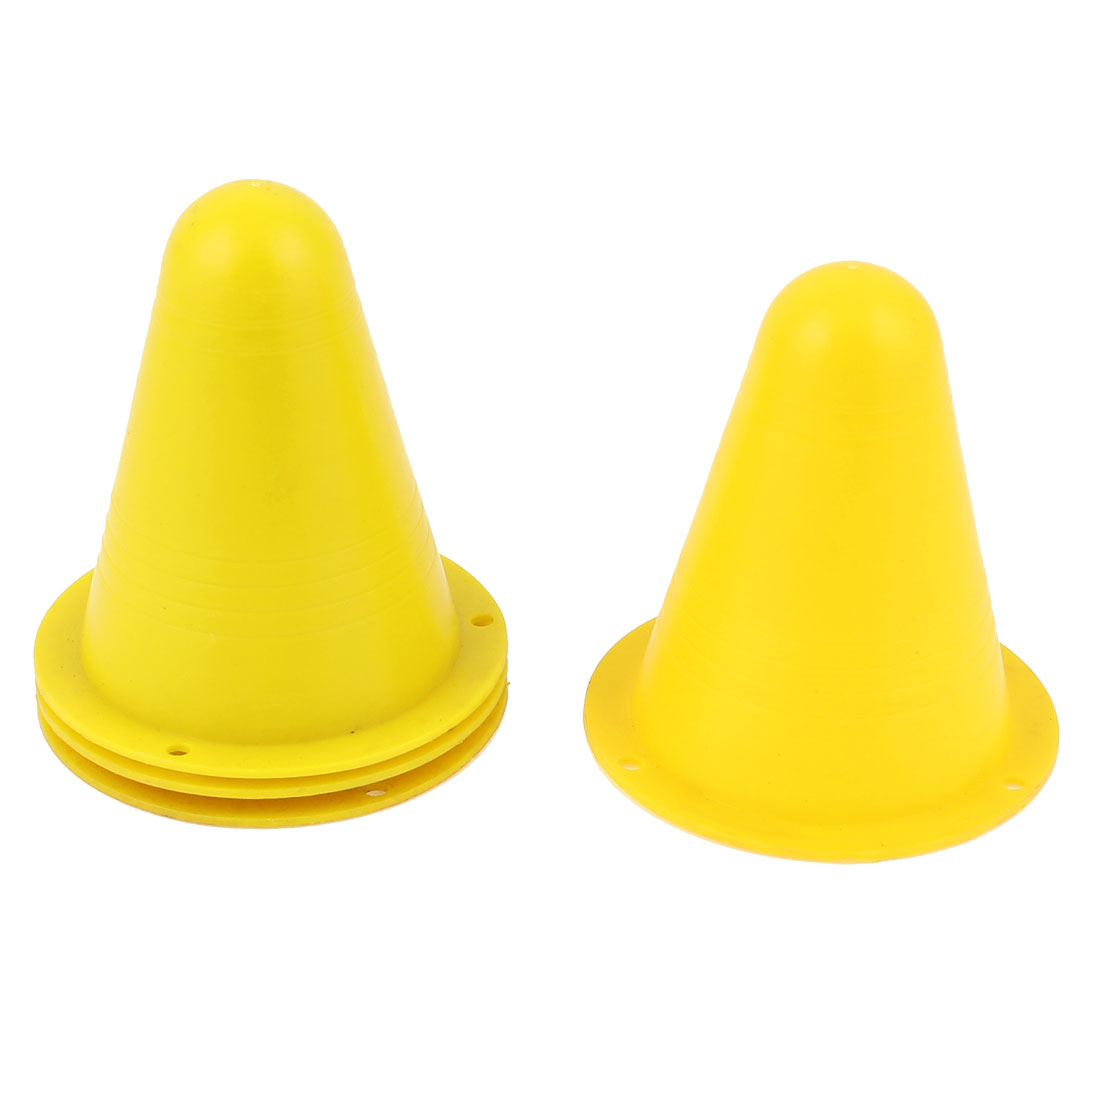 Roller Skating Soccer Rugby Cone Pile Mini Road Obstacles Roadblocks Yellow 4pcs